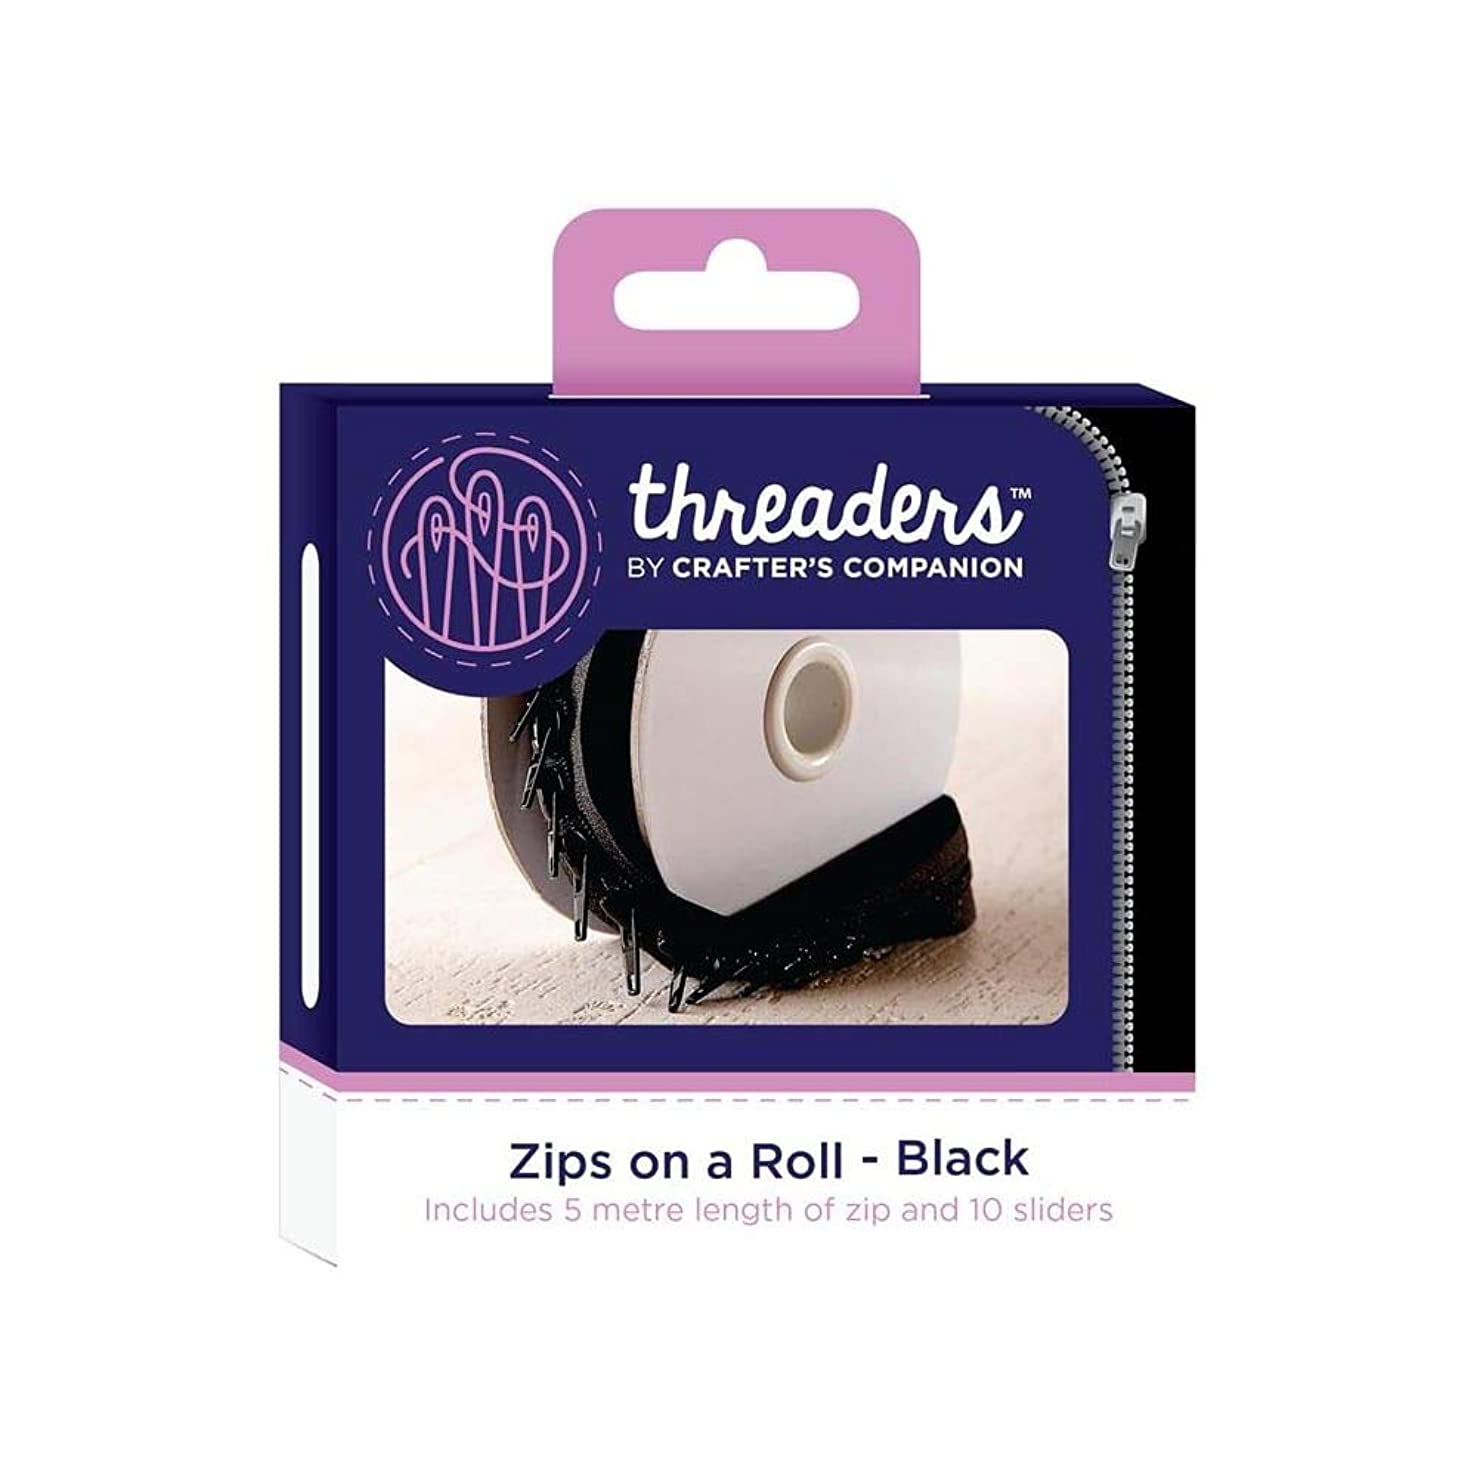 Crafter's Companion TH-1035 Threaders Zips On A Roll Black